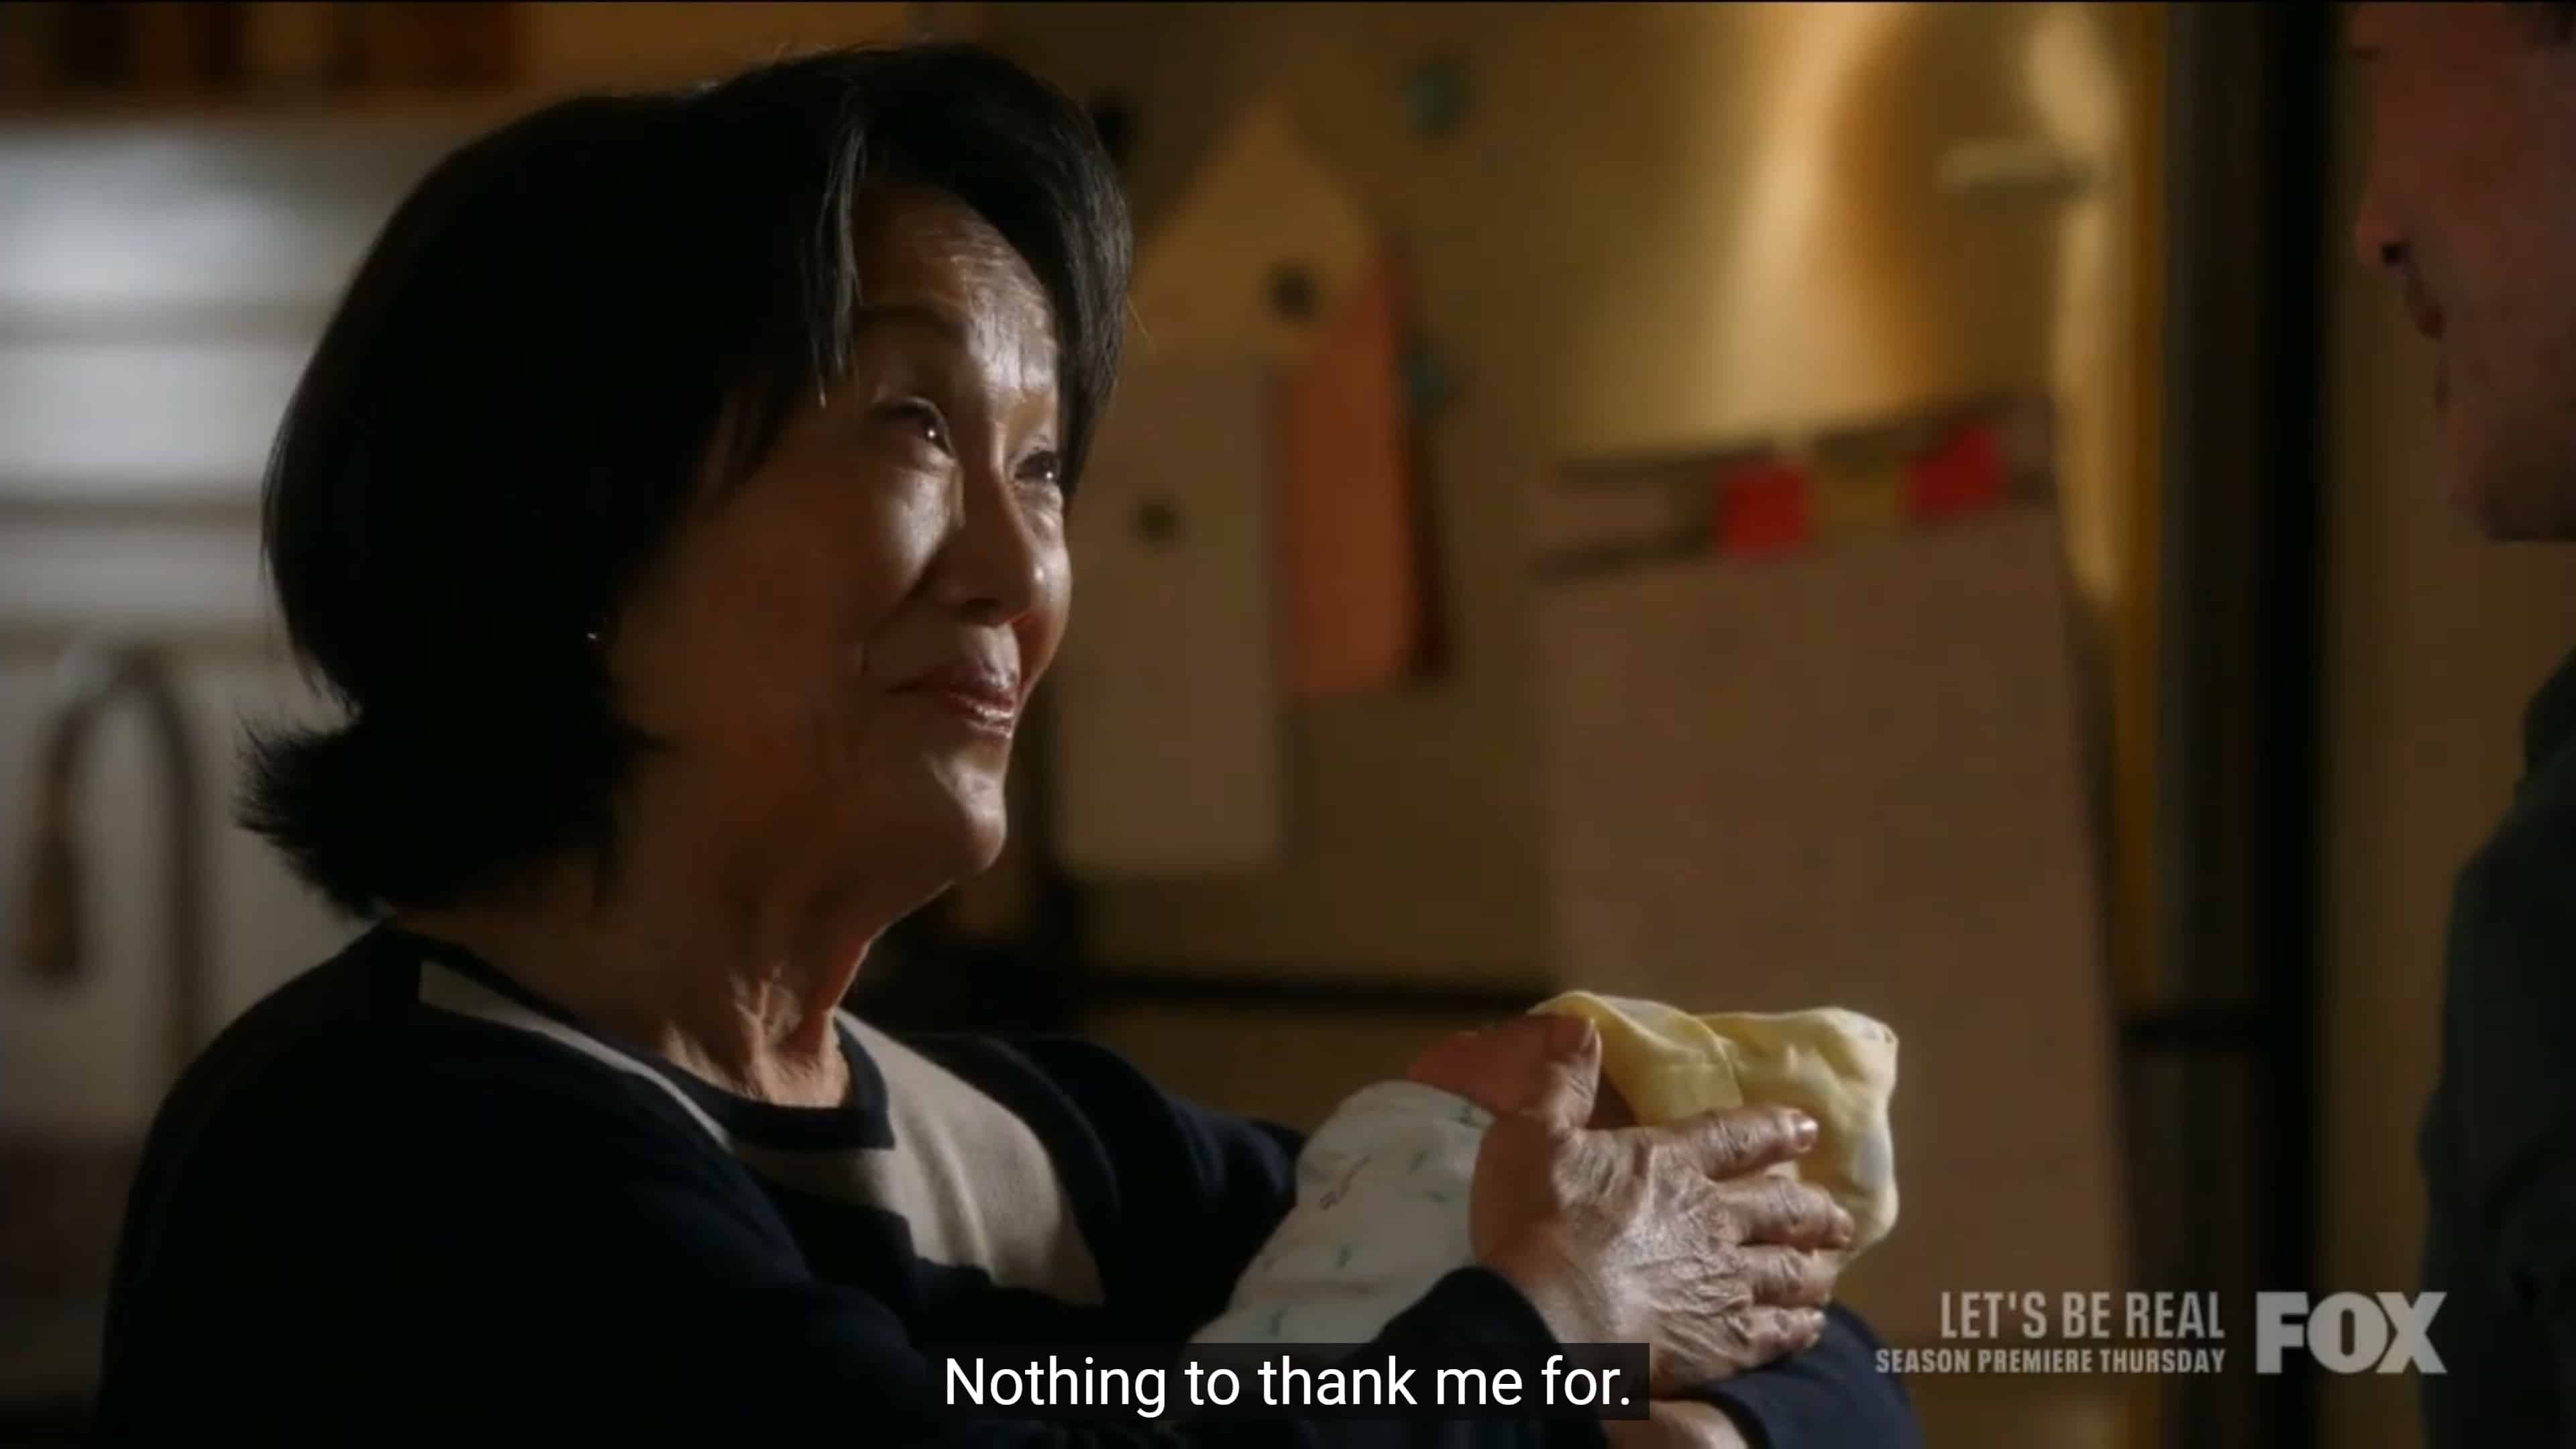 Chim thanking Mrs. Lee for helping